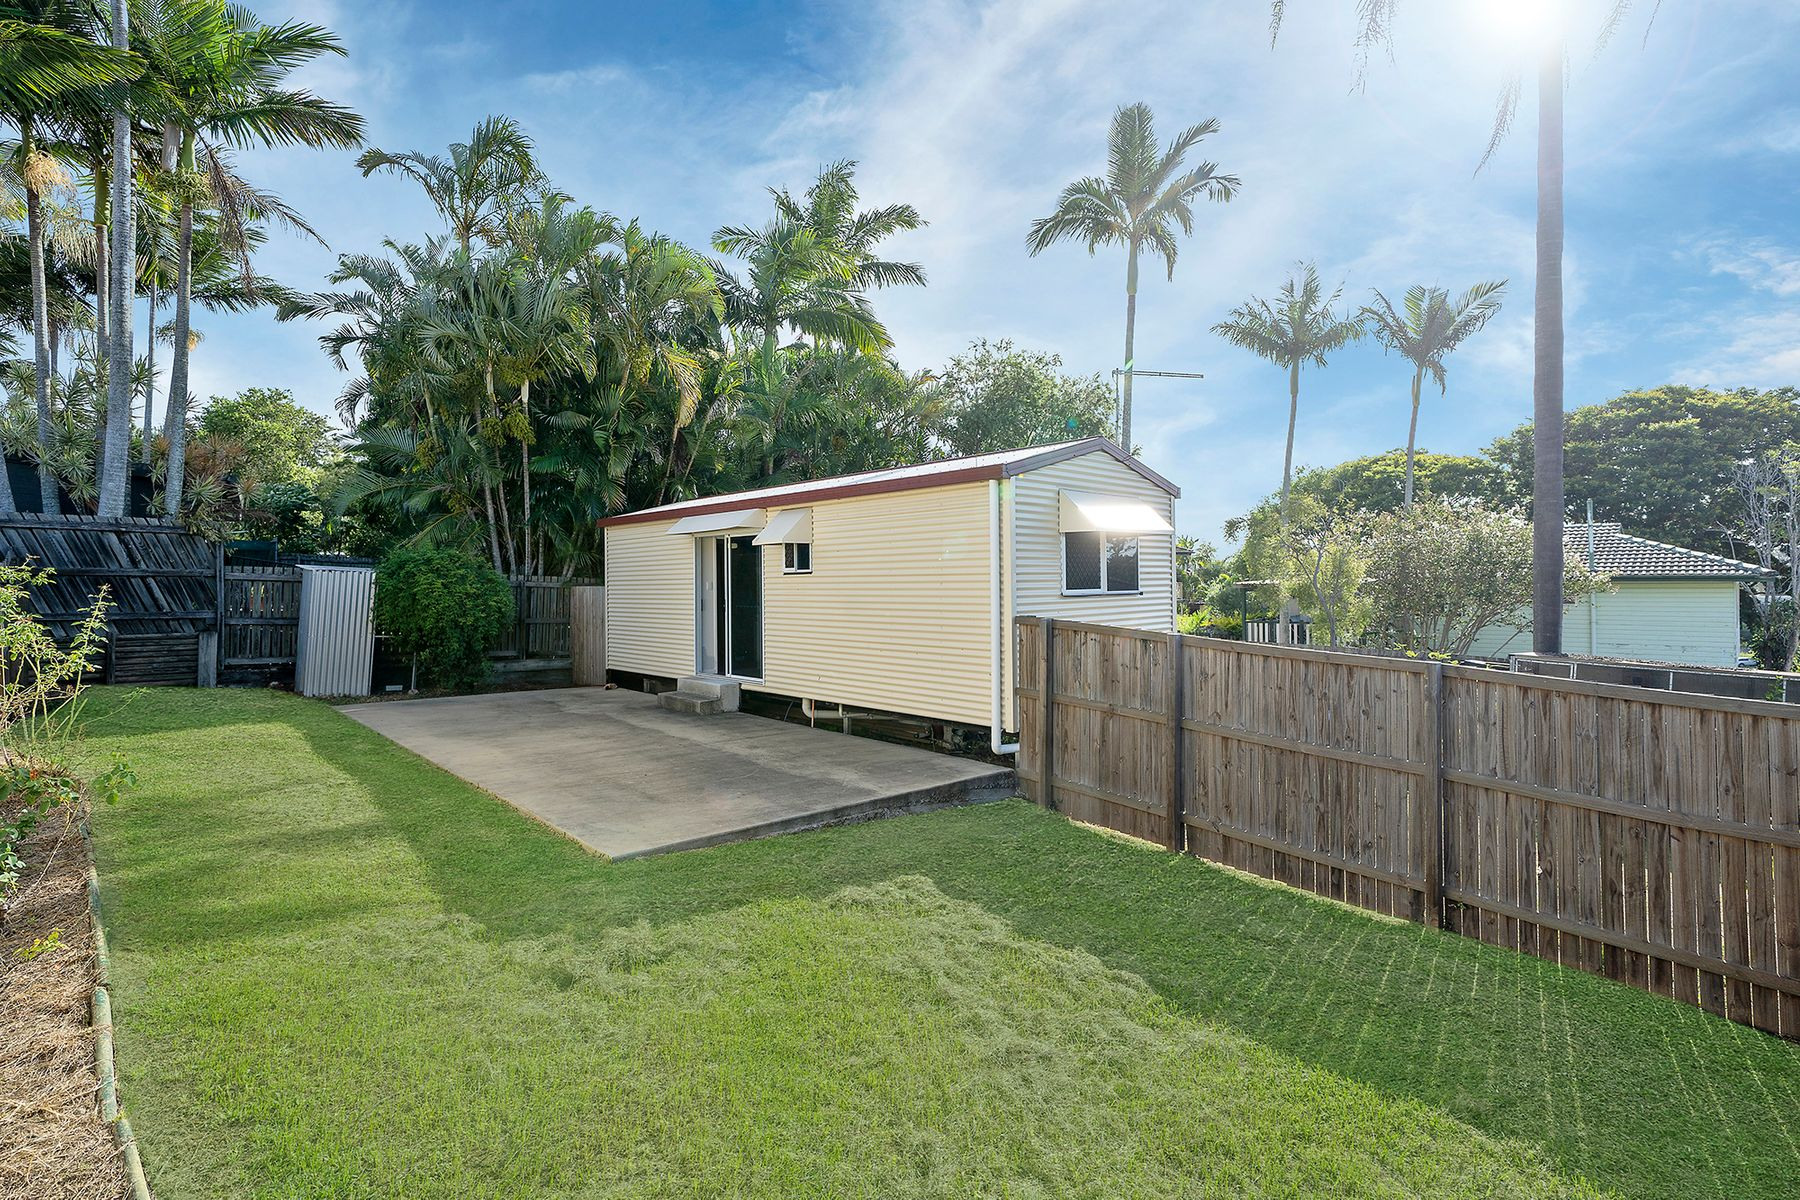 1095 Rochedale Road, Rochedale South, QLD 4123